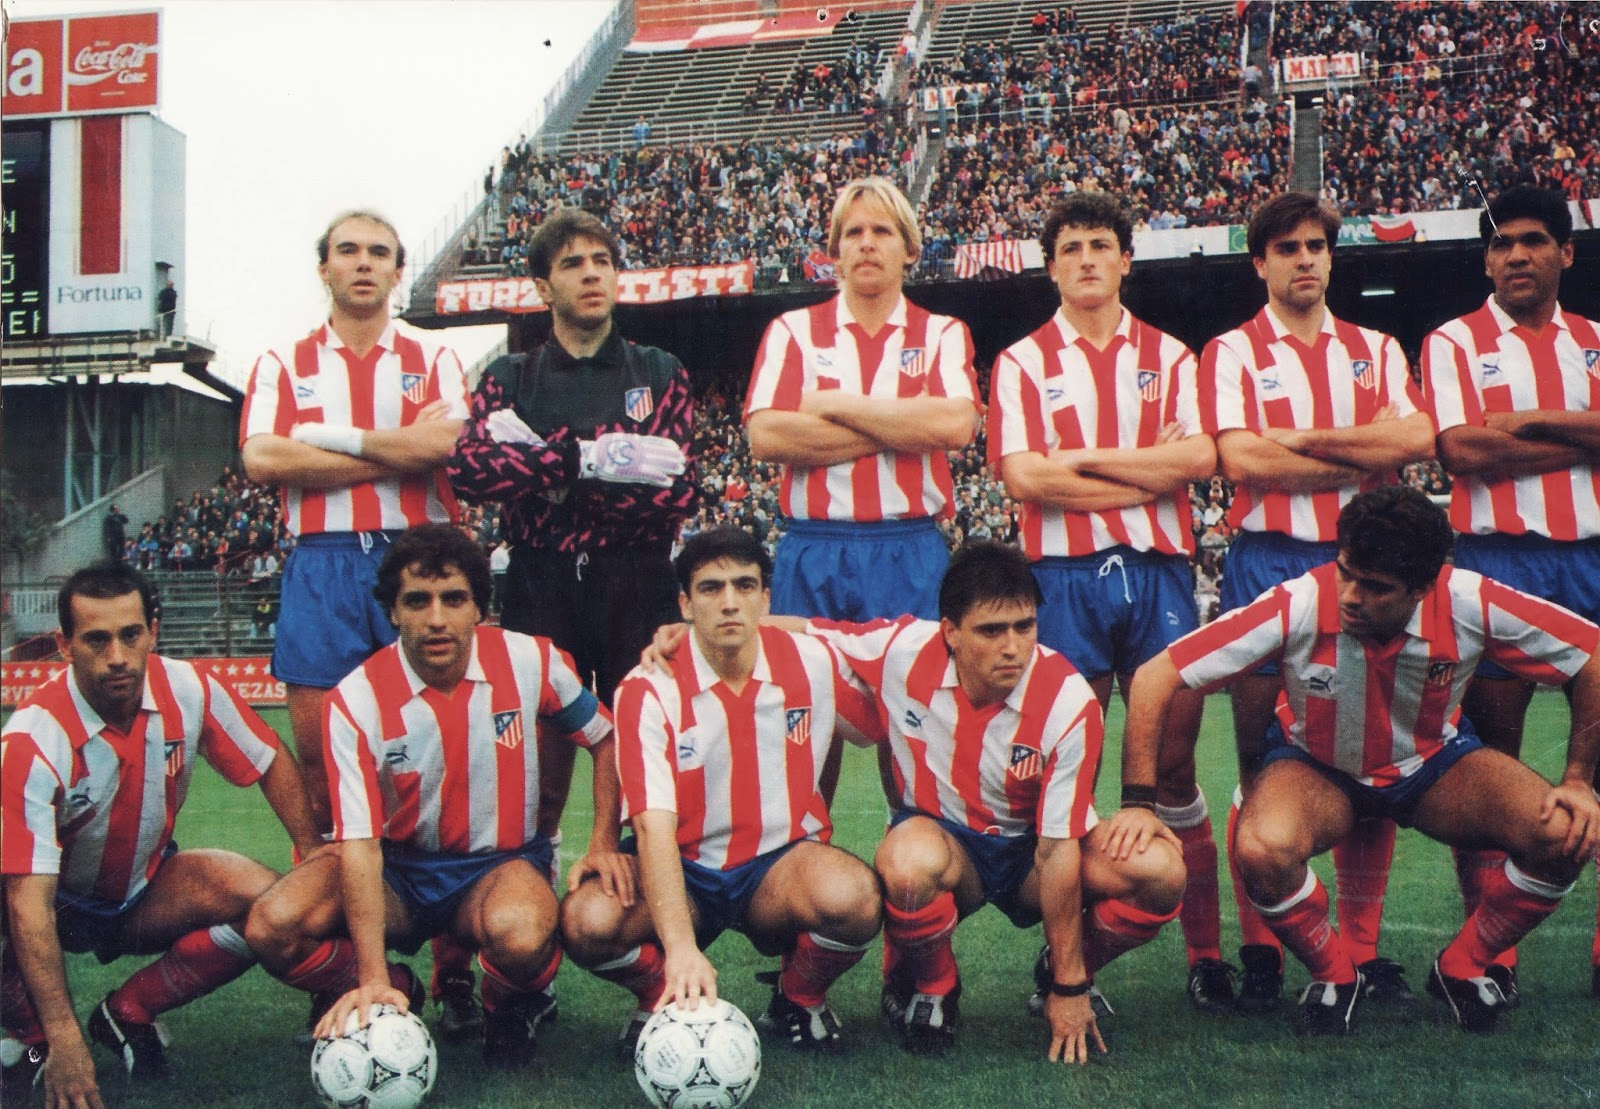 Sezona 1992/93 (Champions League, UEFA Cup, Cup Winner's Cup) Atletico+Madrid+1992-93